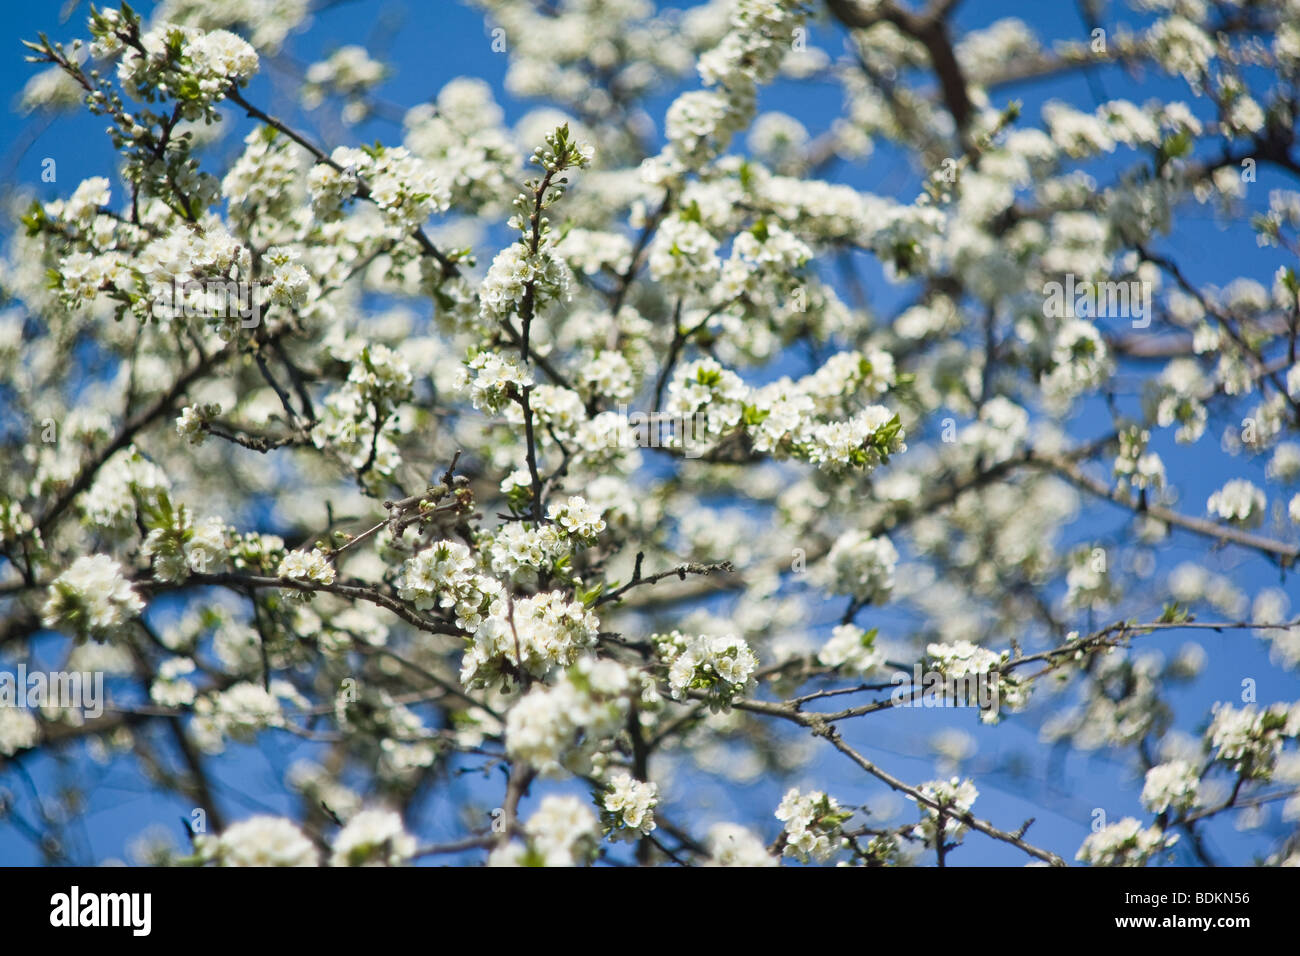 Blooming plum tree with white flowers on blue sky background, soft focus - Stock Image